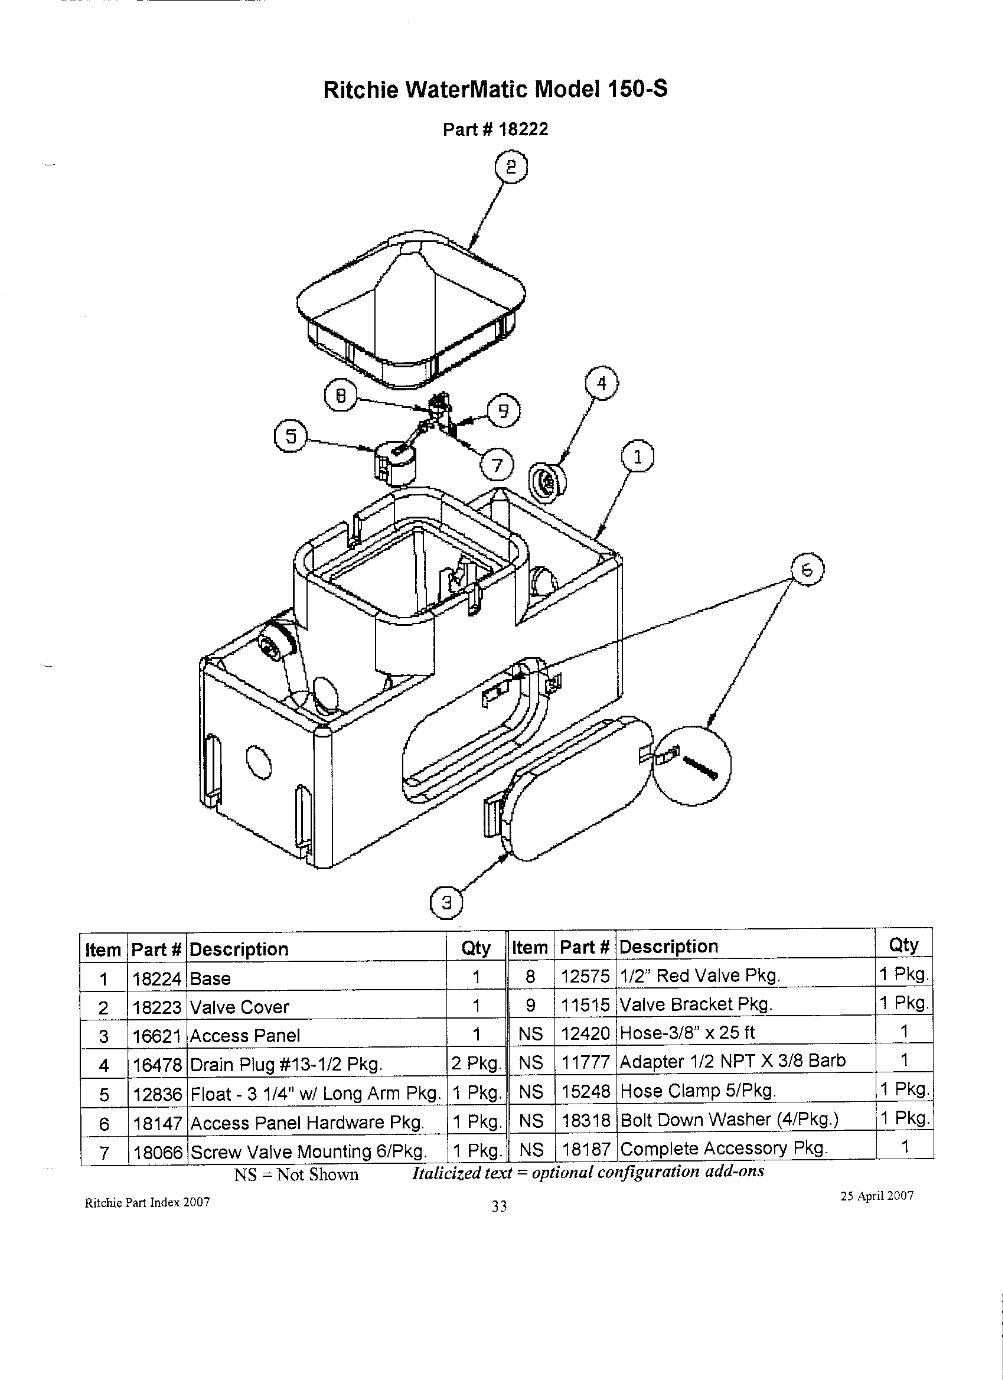 watermatic 150s parts